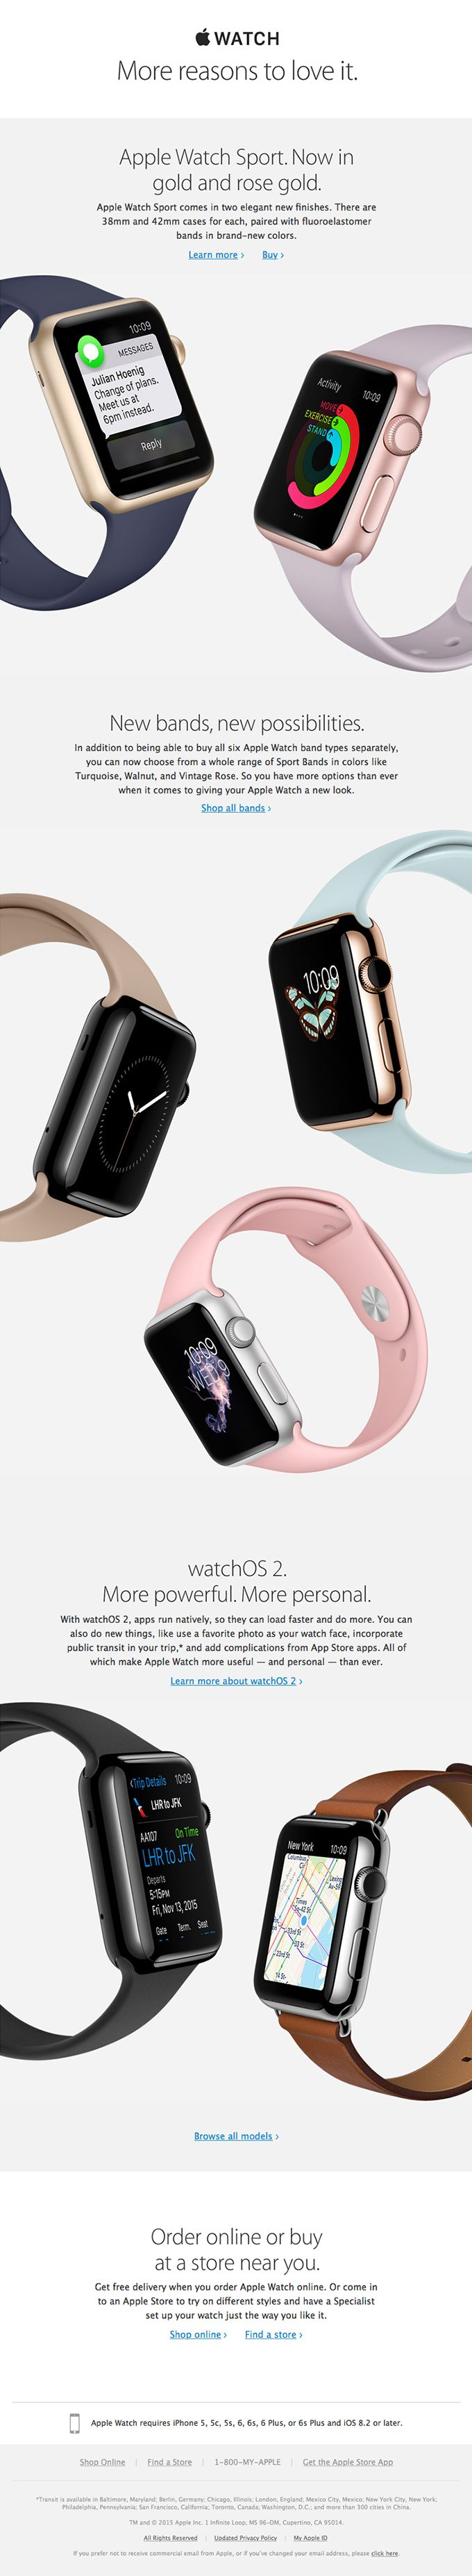 See-what-new-with-Apple-Watch